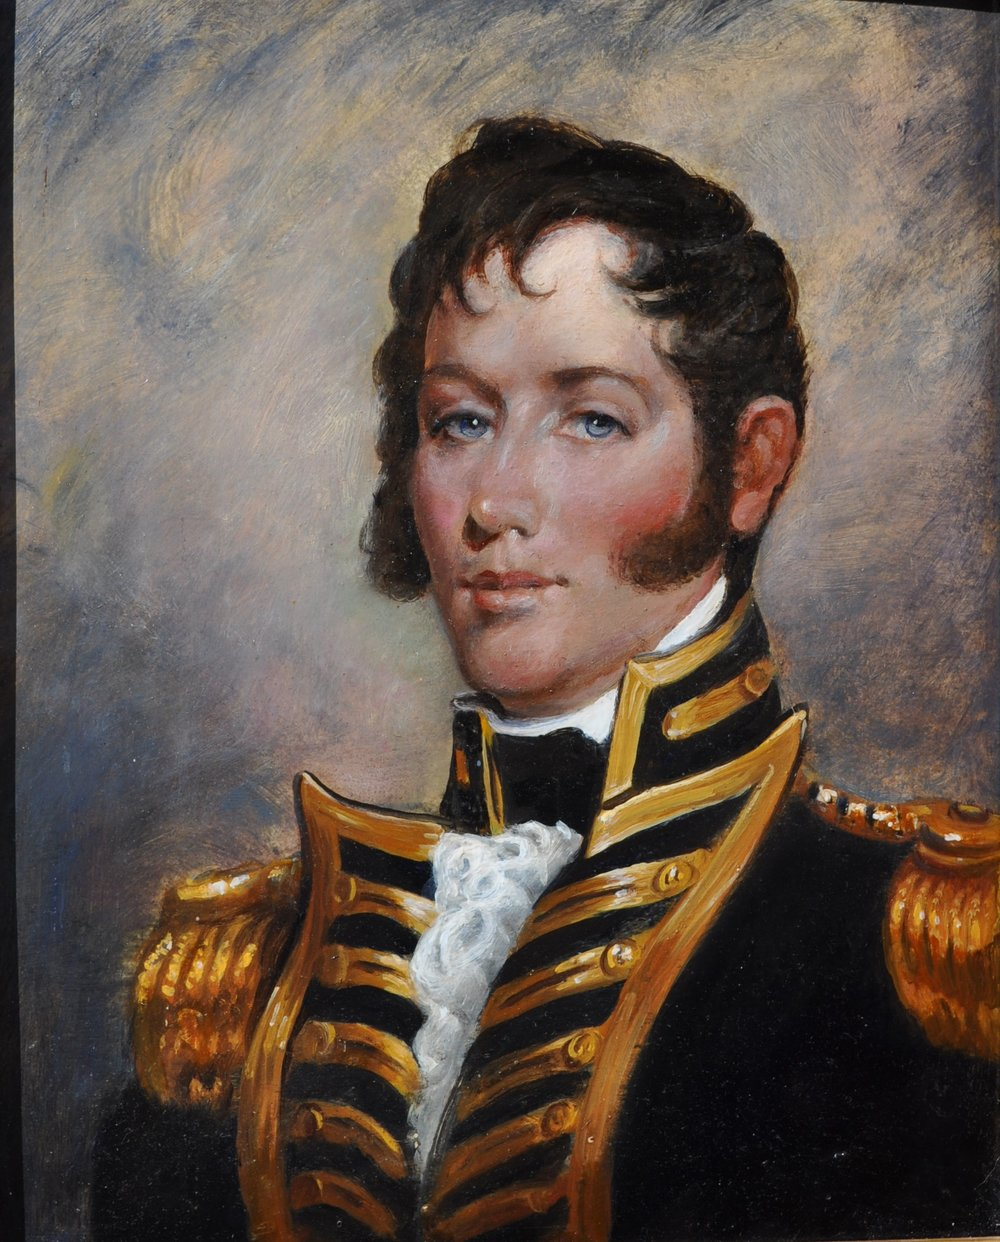 """PETER ARGUIMBAU    Commander: Oliver Hazard Perry    Born in South Kingstown, RI, Commodore Perry was an American Naval Commander. Along with fighting piracy and slave trade, he played a crucial role in the War of 1812. After building a fleet on the coast of Lake Erie, he led American naval forces to victory against a Royal Navy squadron; earning the title """"Hero of Lake Erie."""" Rhode Island's only tall ship, the  Oliver Hazard Perry , is docked at Fort Adams in Newport.  20 x 16 inches"""